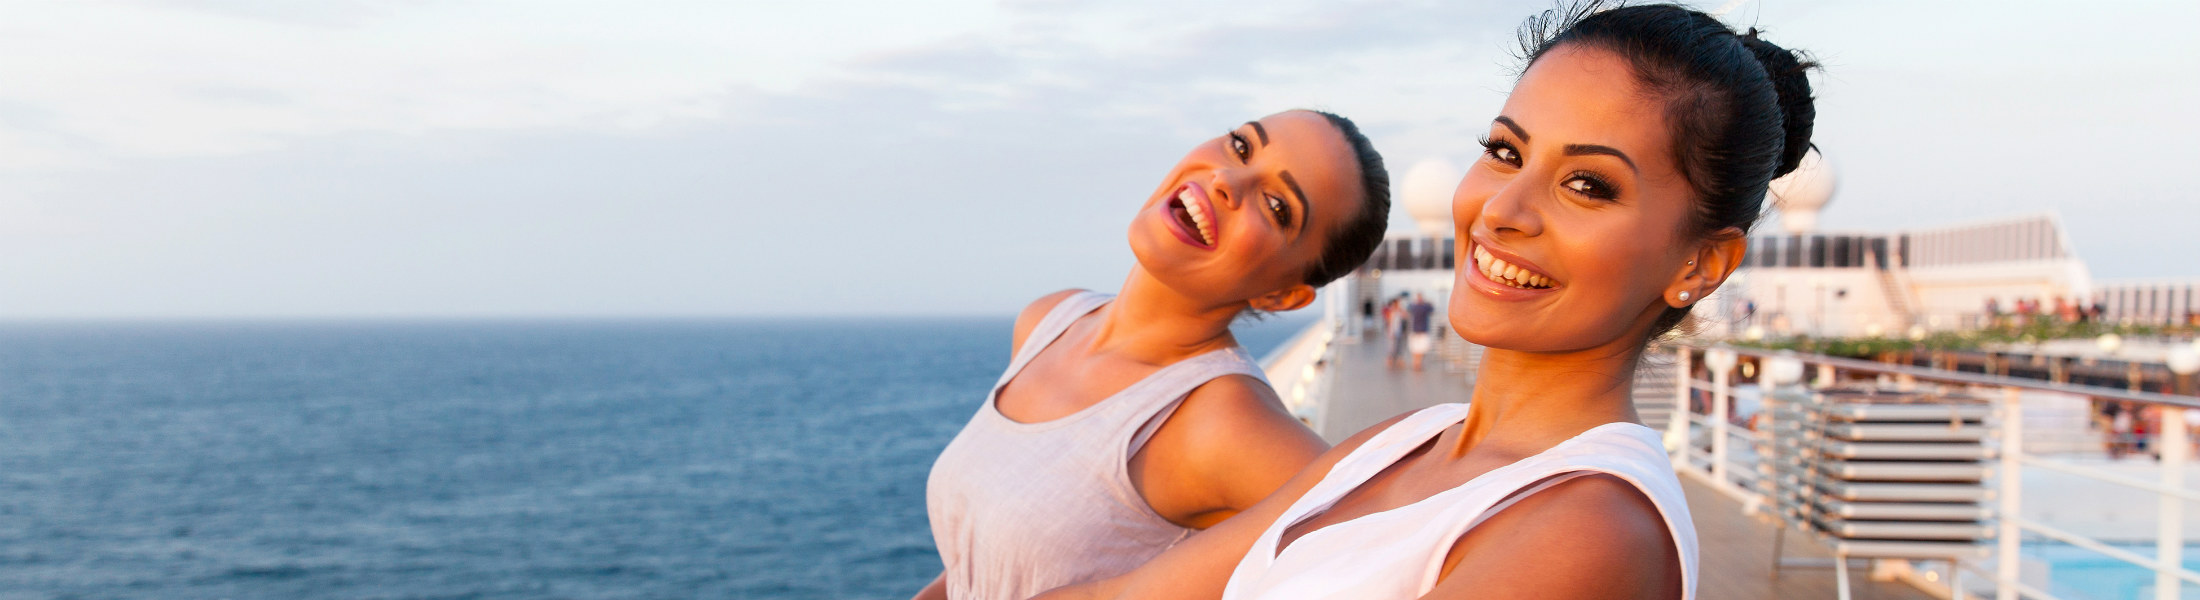 two women having fun on cruise ship